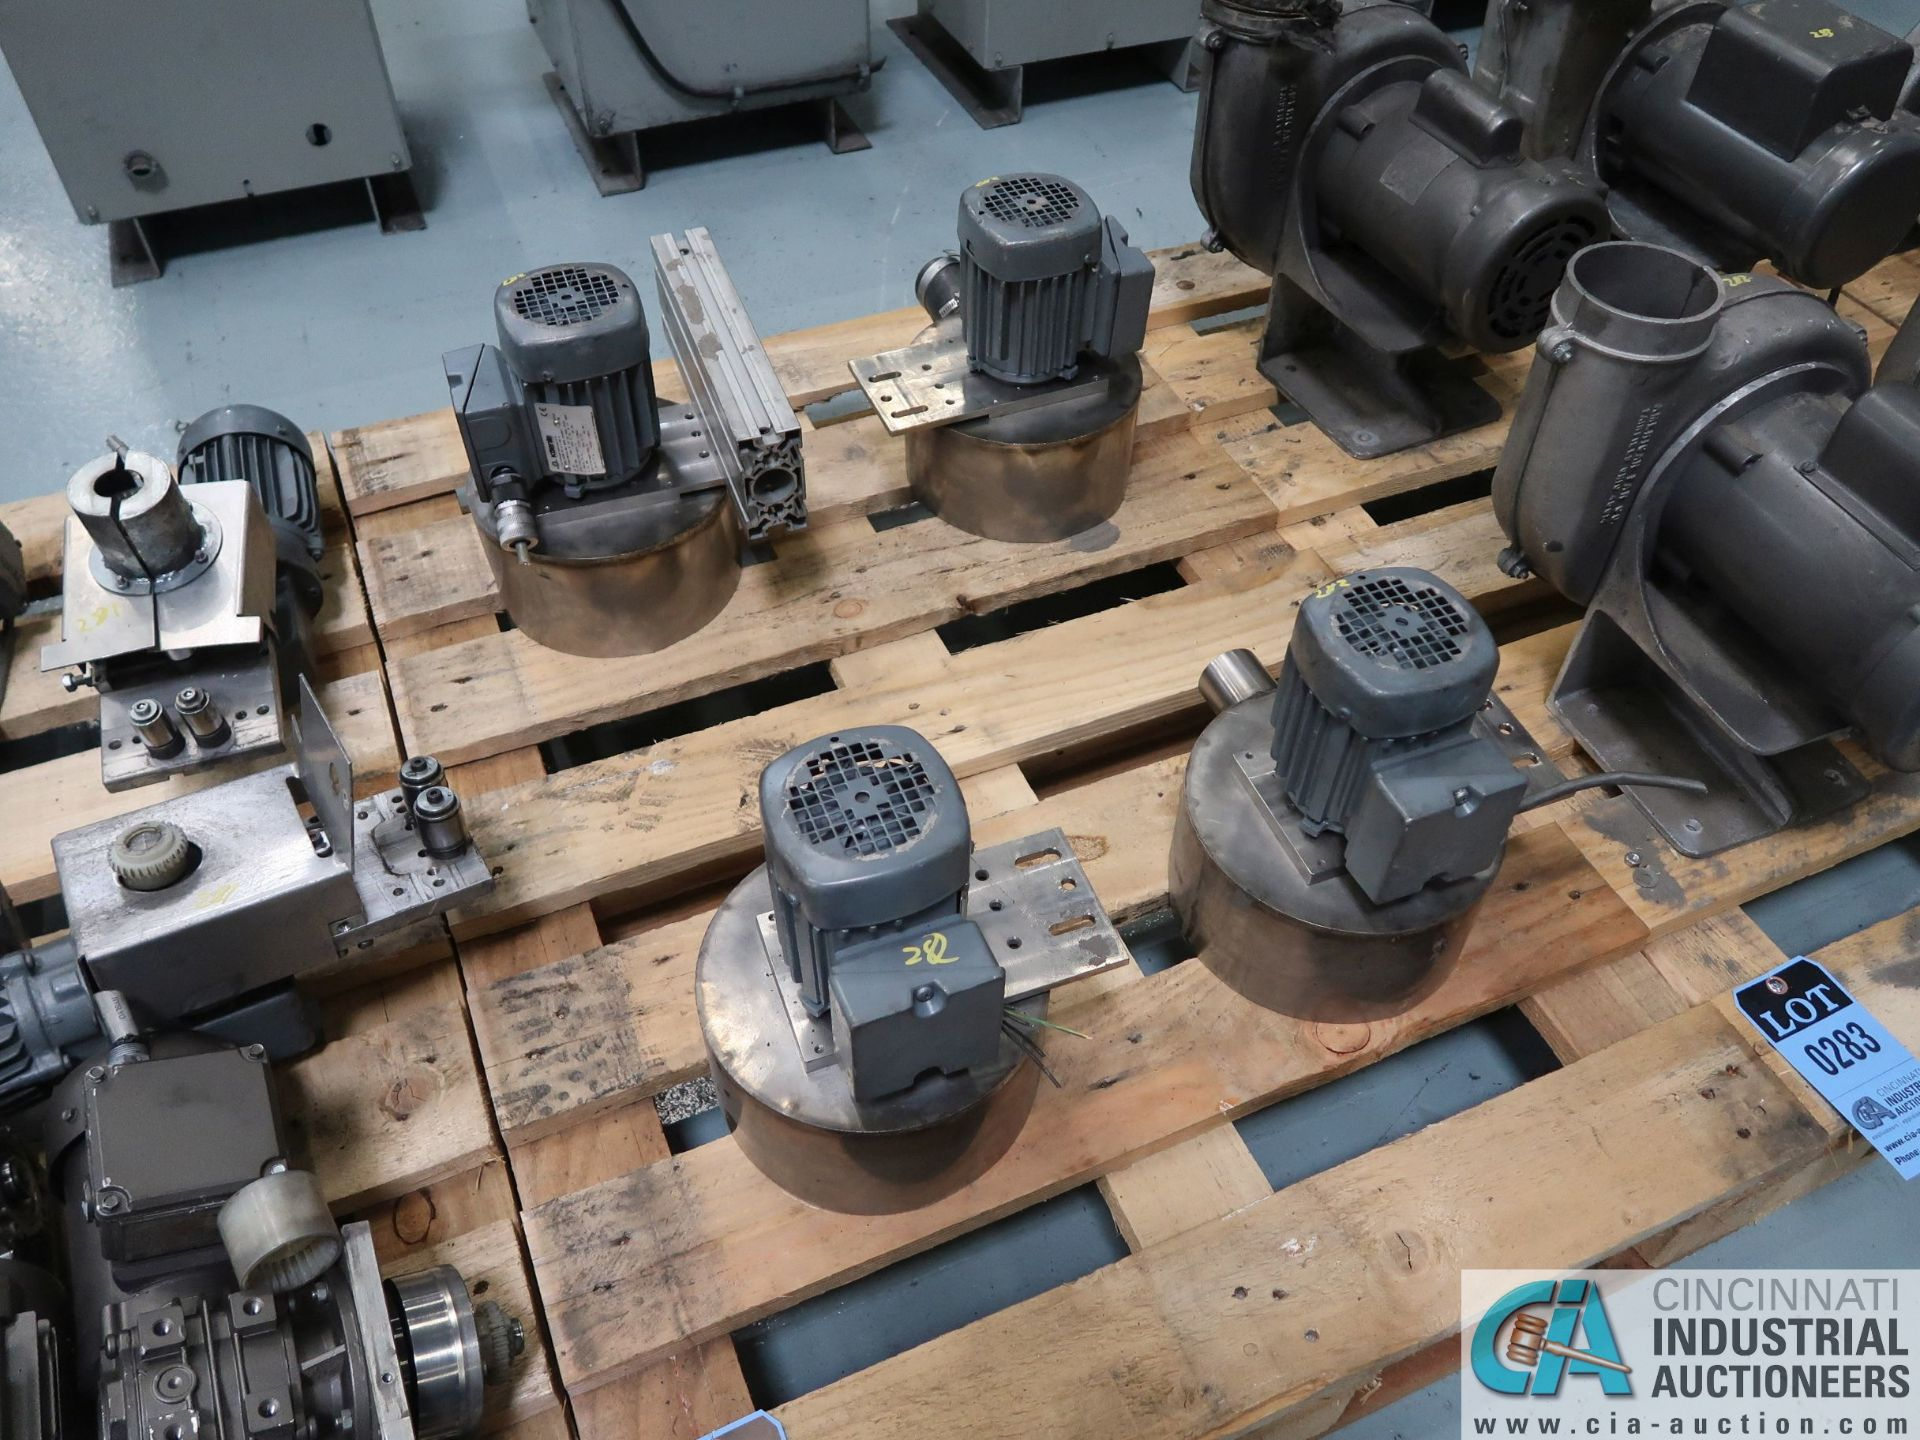 Lot 282 - 0.12 KW APPROX. DRIVE MOTORS *$25.00 RIGGING FEE DUE TO INDUSTRIAL SERVICES AND SALES*